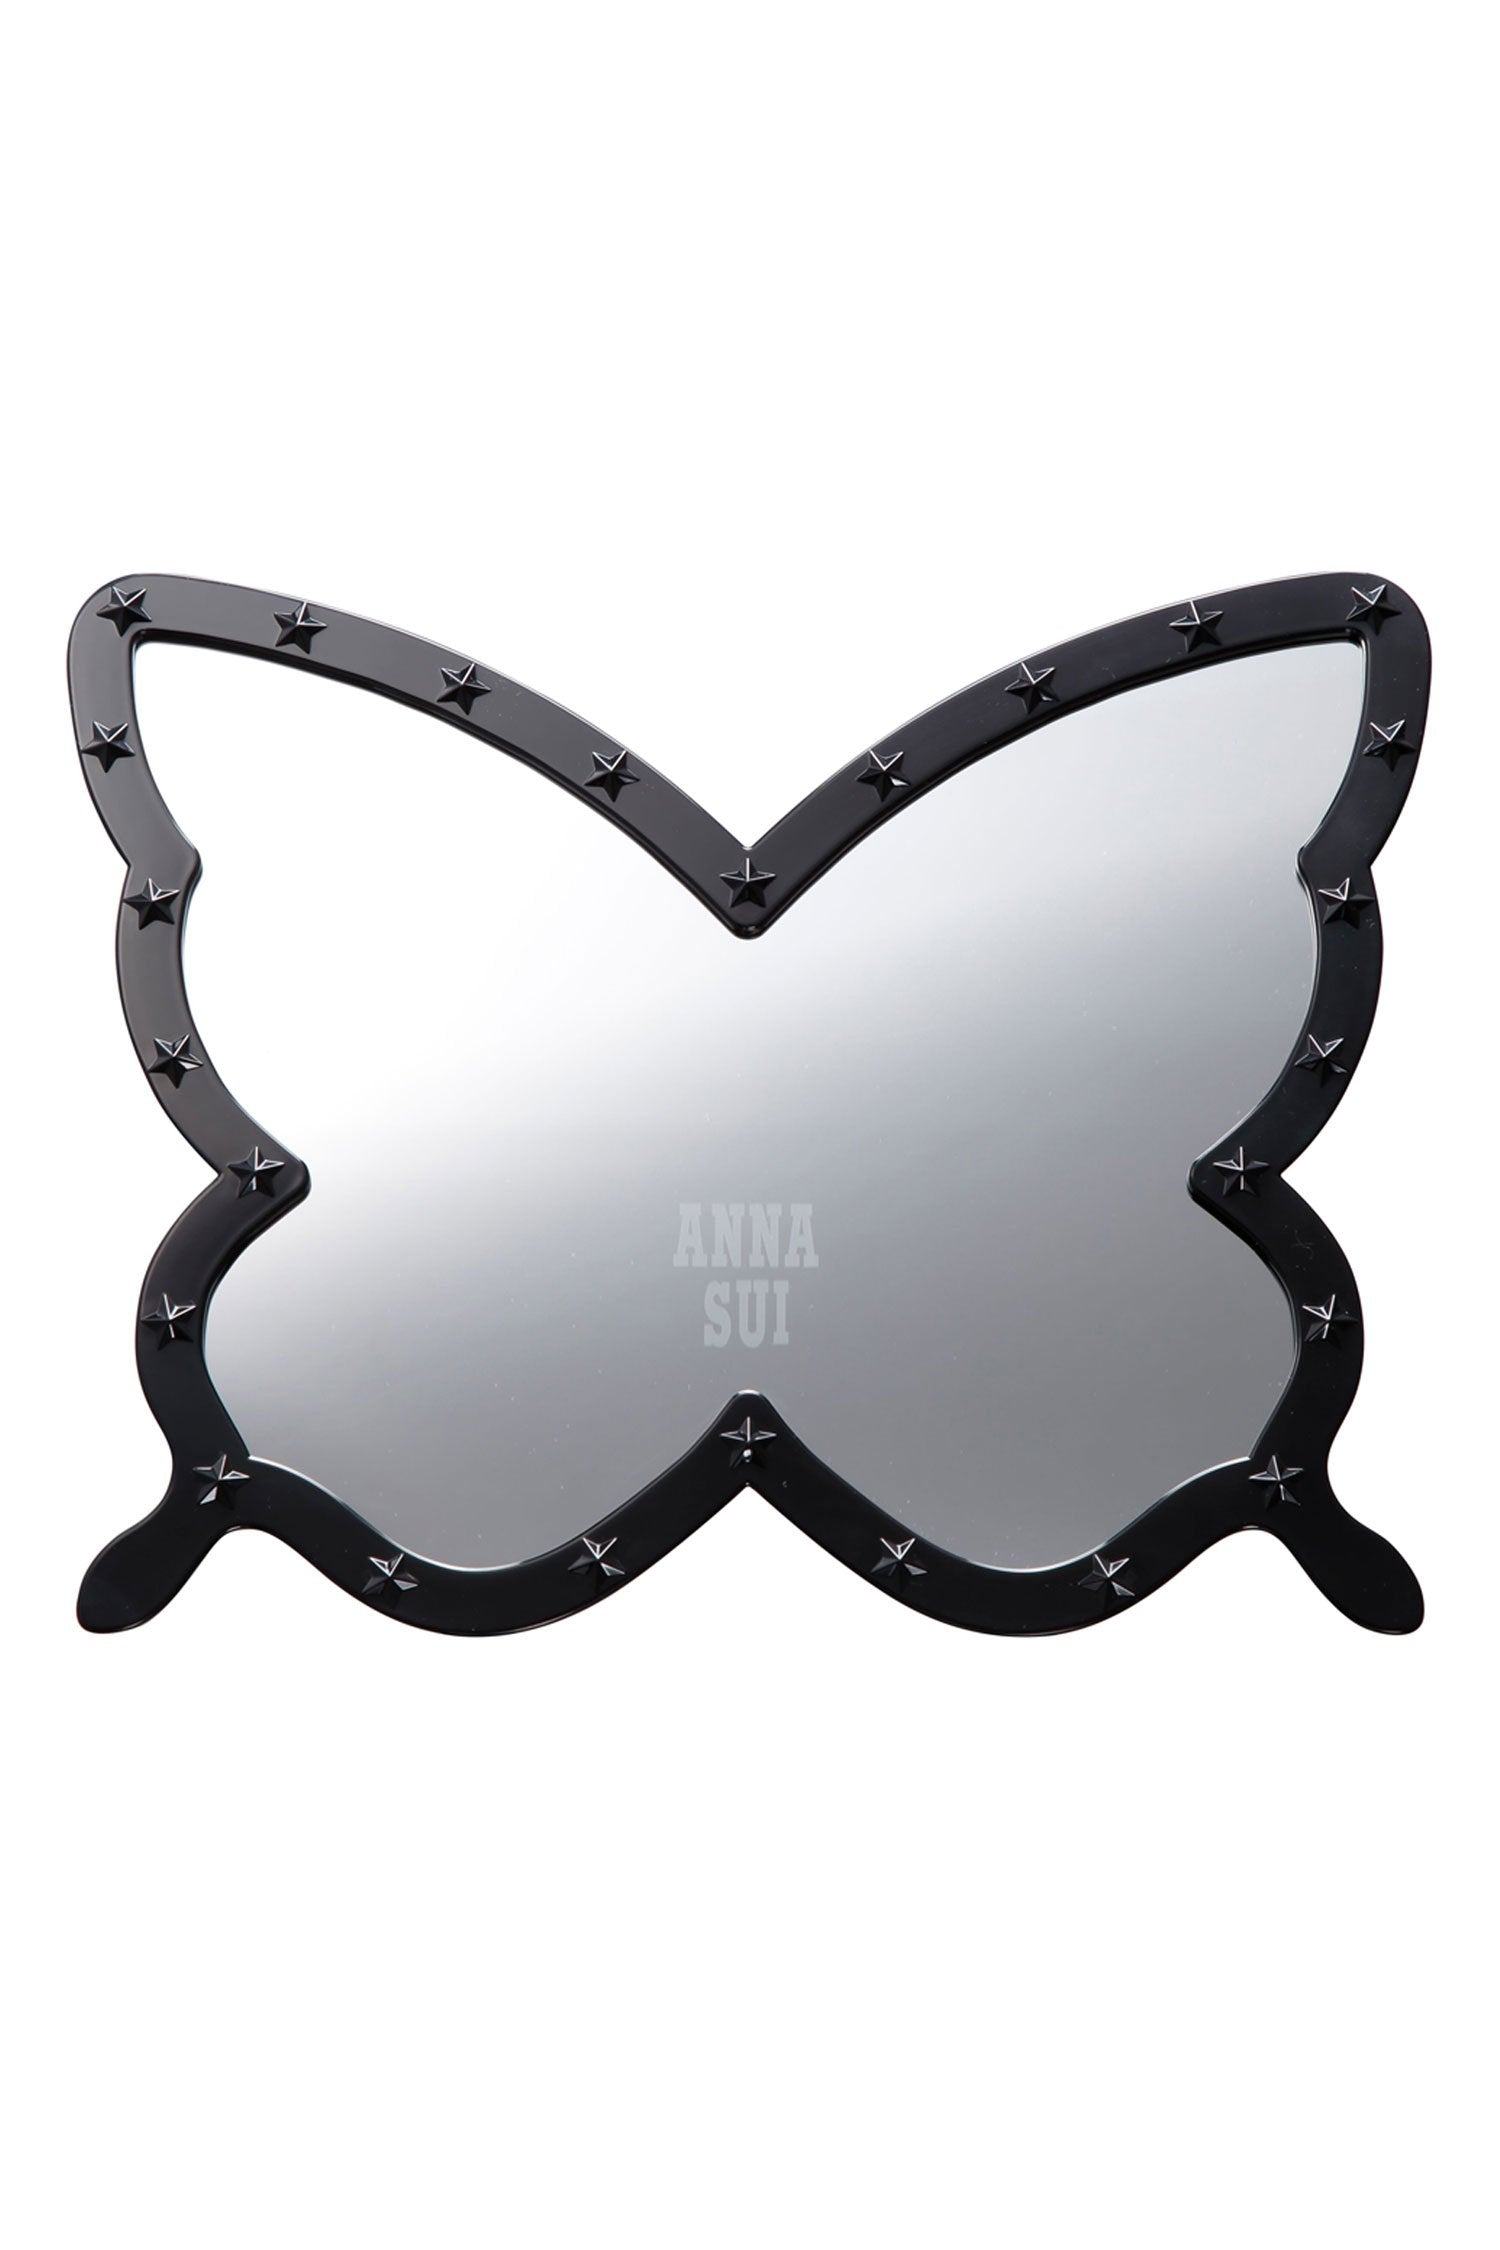 New: Butterfly Stand Mirror - Anna Sui